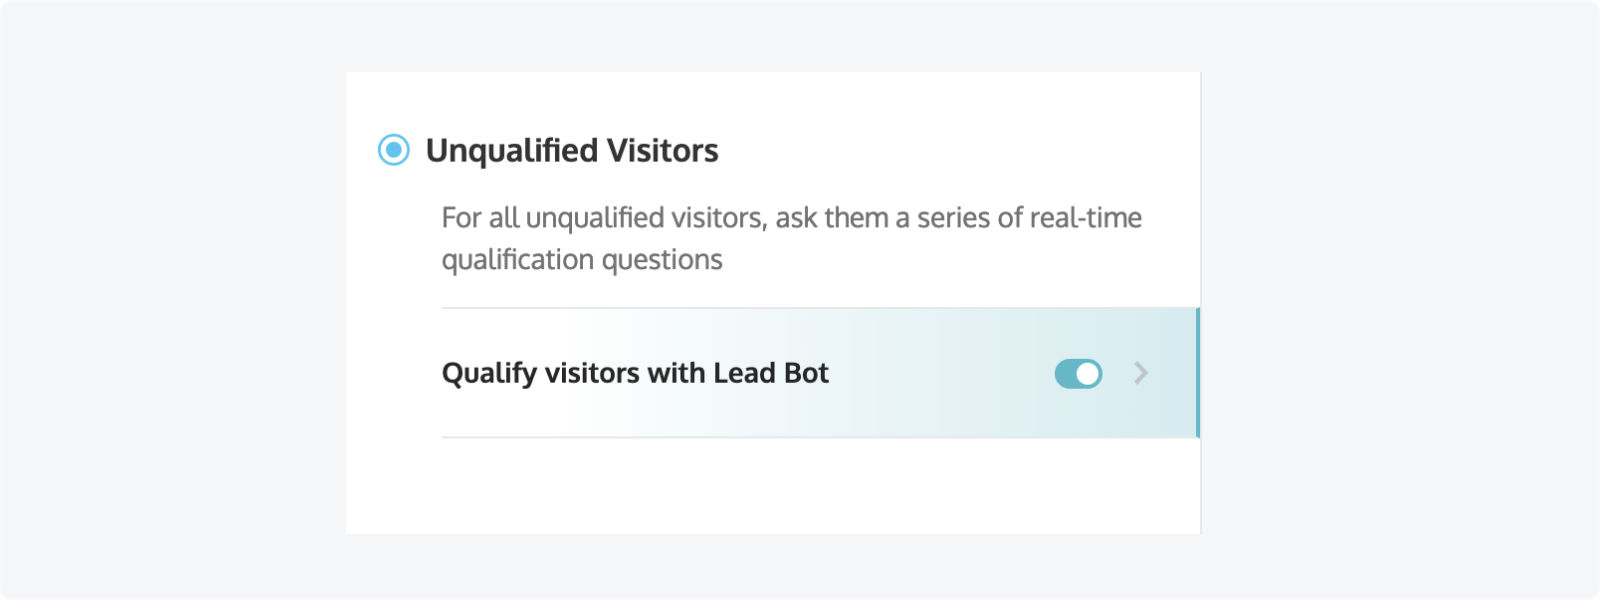 LeadBot settings found in Settings > Qualify Visitors with LeadBot